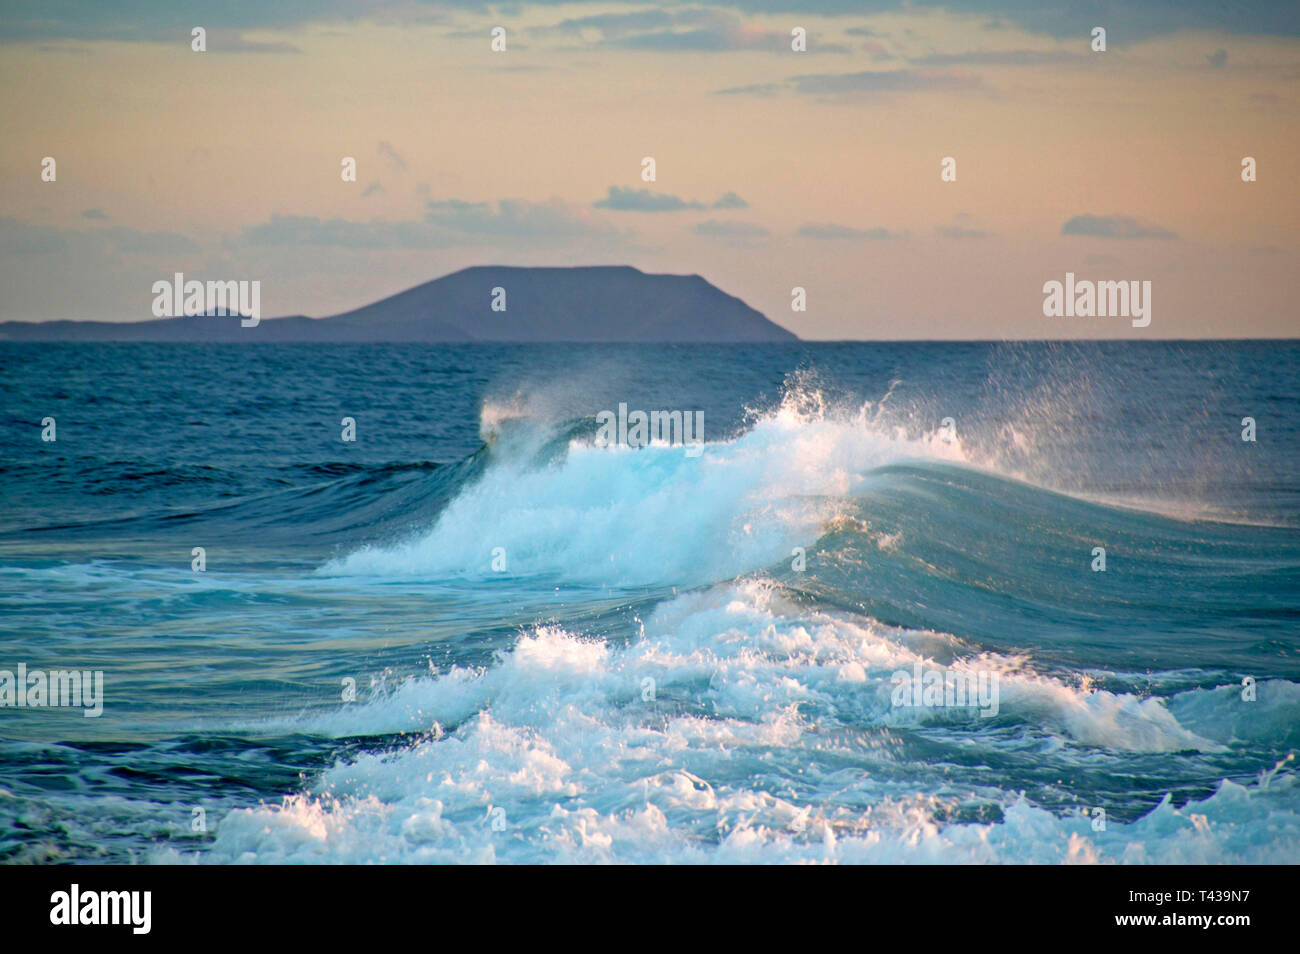 Sea surf in the evening at Playa Blanca in Lanzarote, view of Fuerteventura, Canary Islands Stock Photo